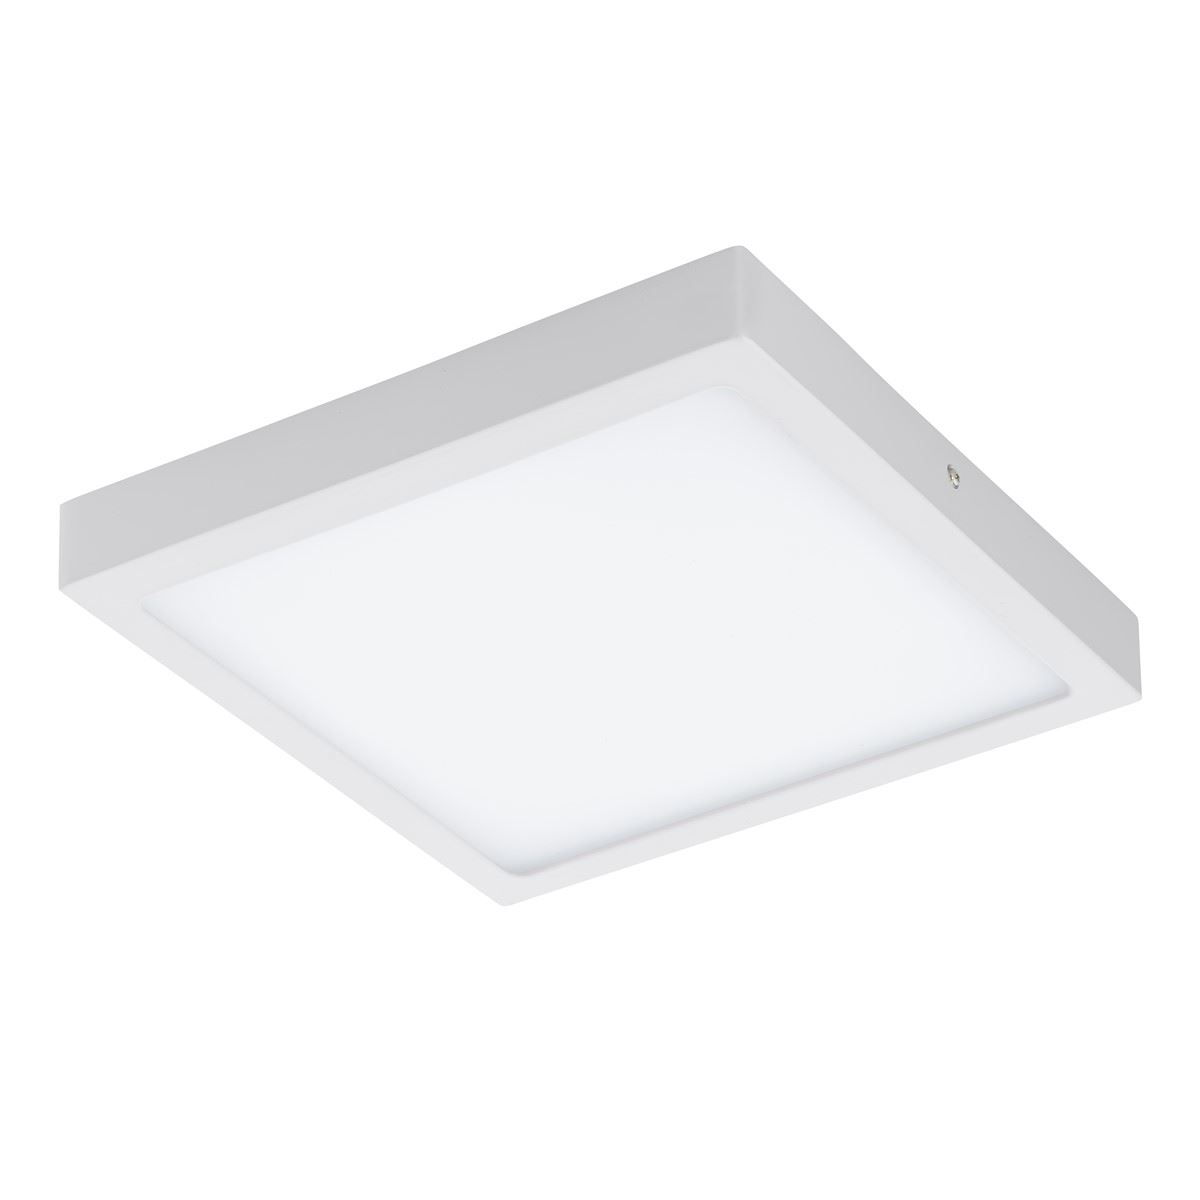 Led Ceiling Recessed White Square Panel Down Light Lamp 2 Mode Colour Blue-Rgb